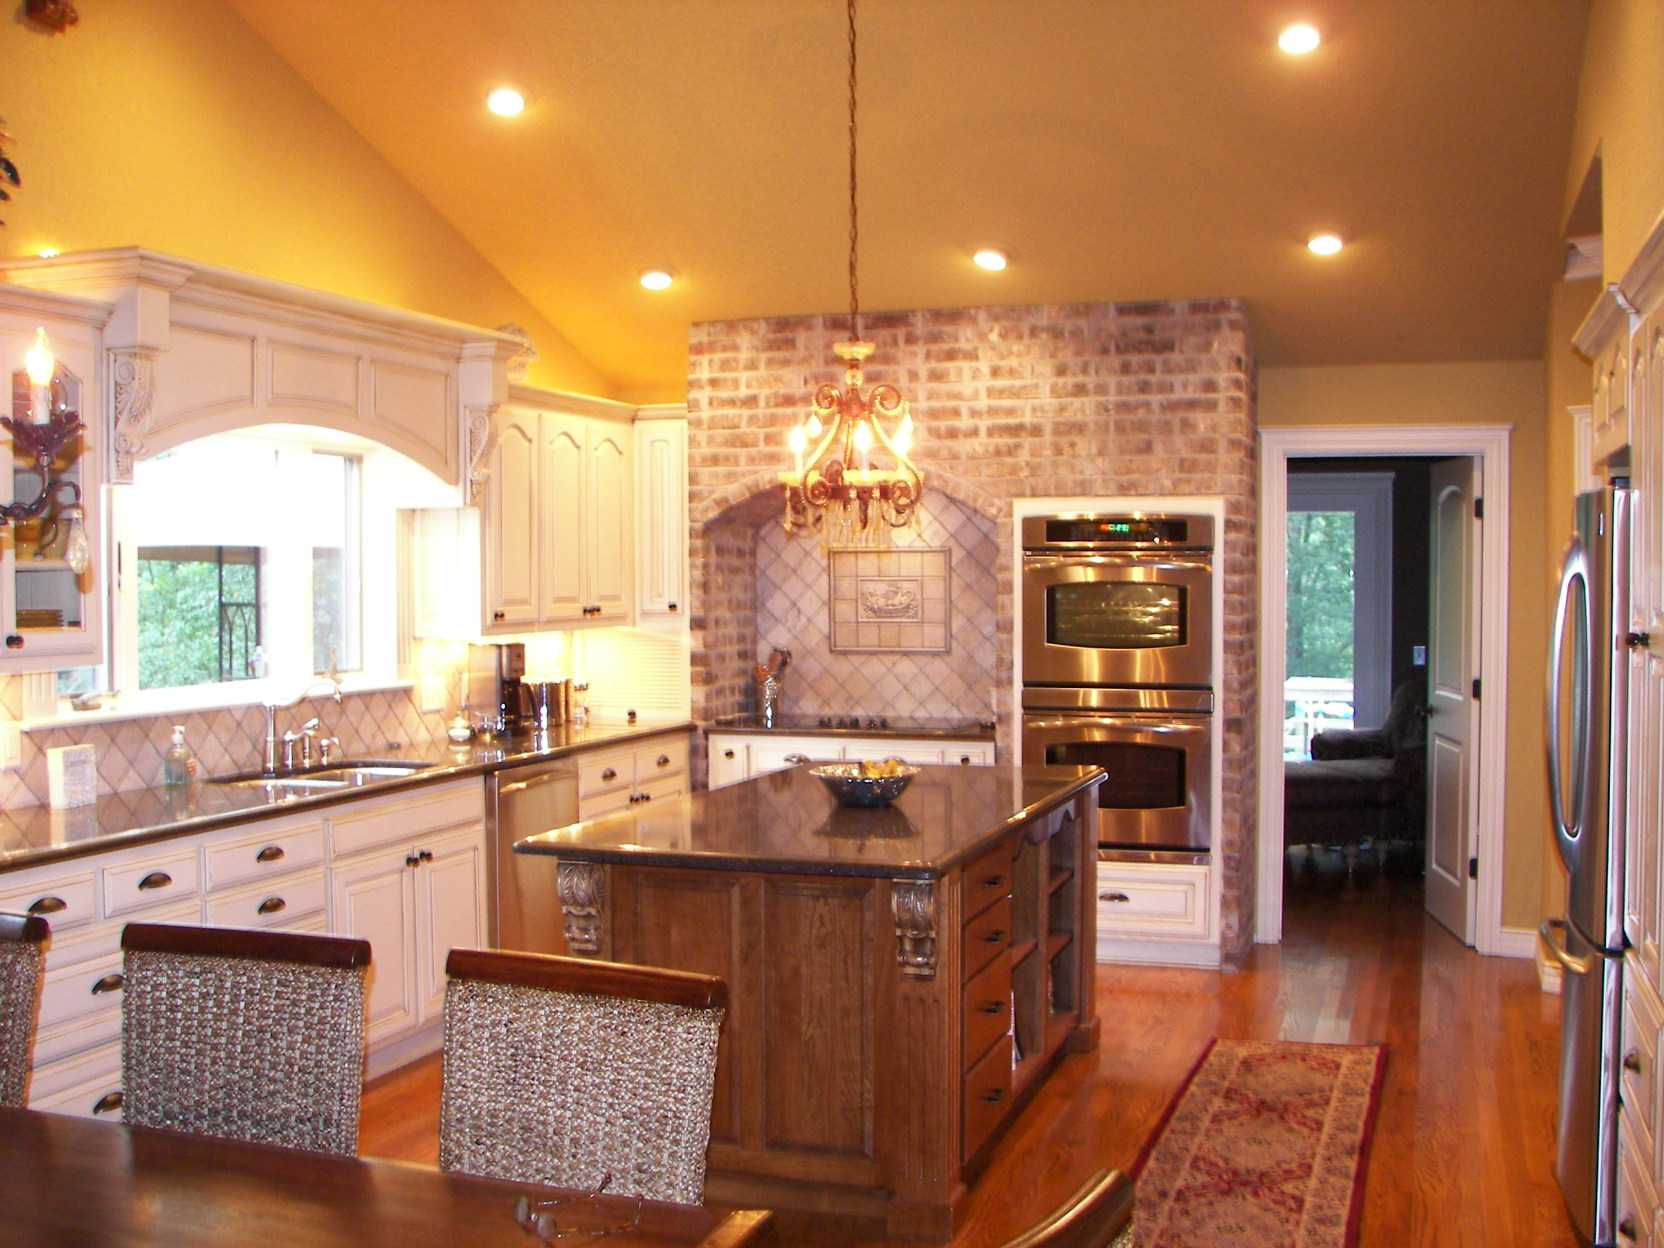 Janacek Kitchen Remodel